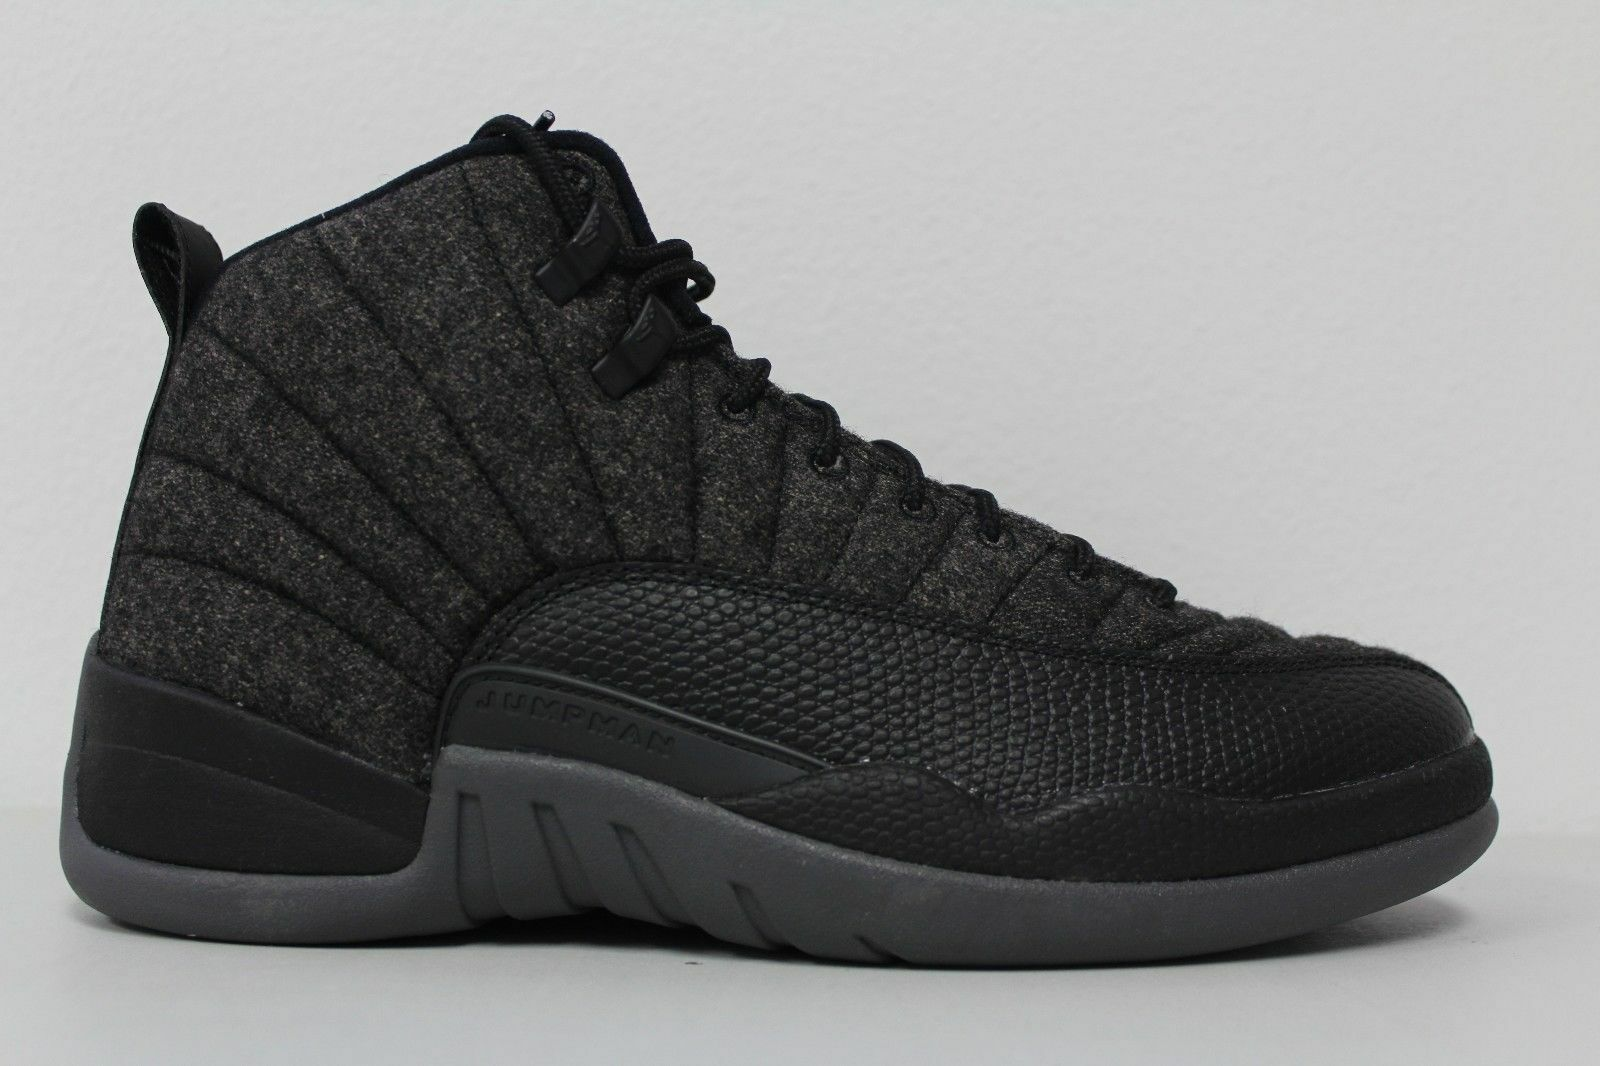 a326328c24f318 Nike Air Jordan 12 Retro Wool (852627-003) Men s Shoes - Dark  Grey Black Metallic Silver